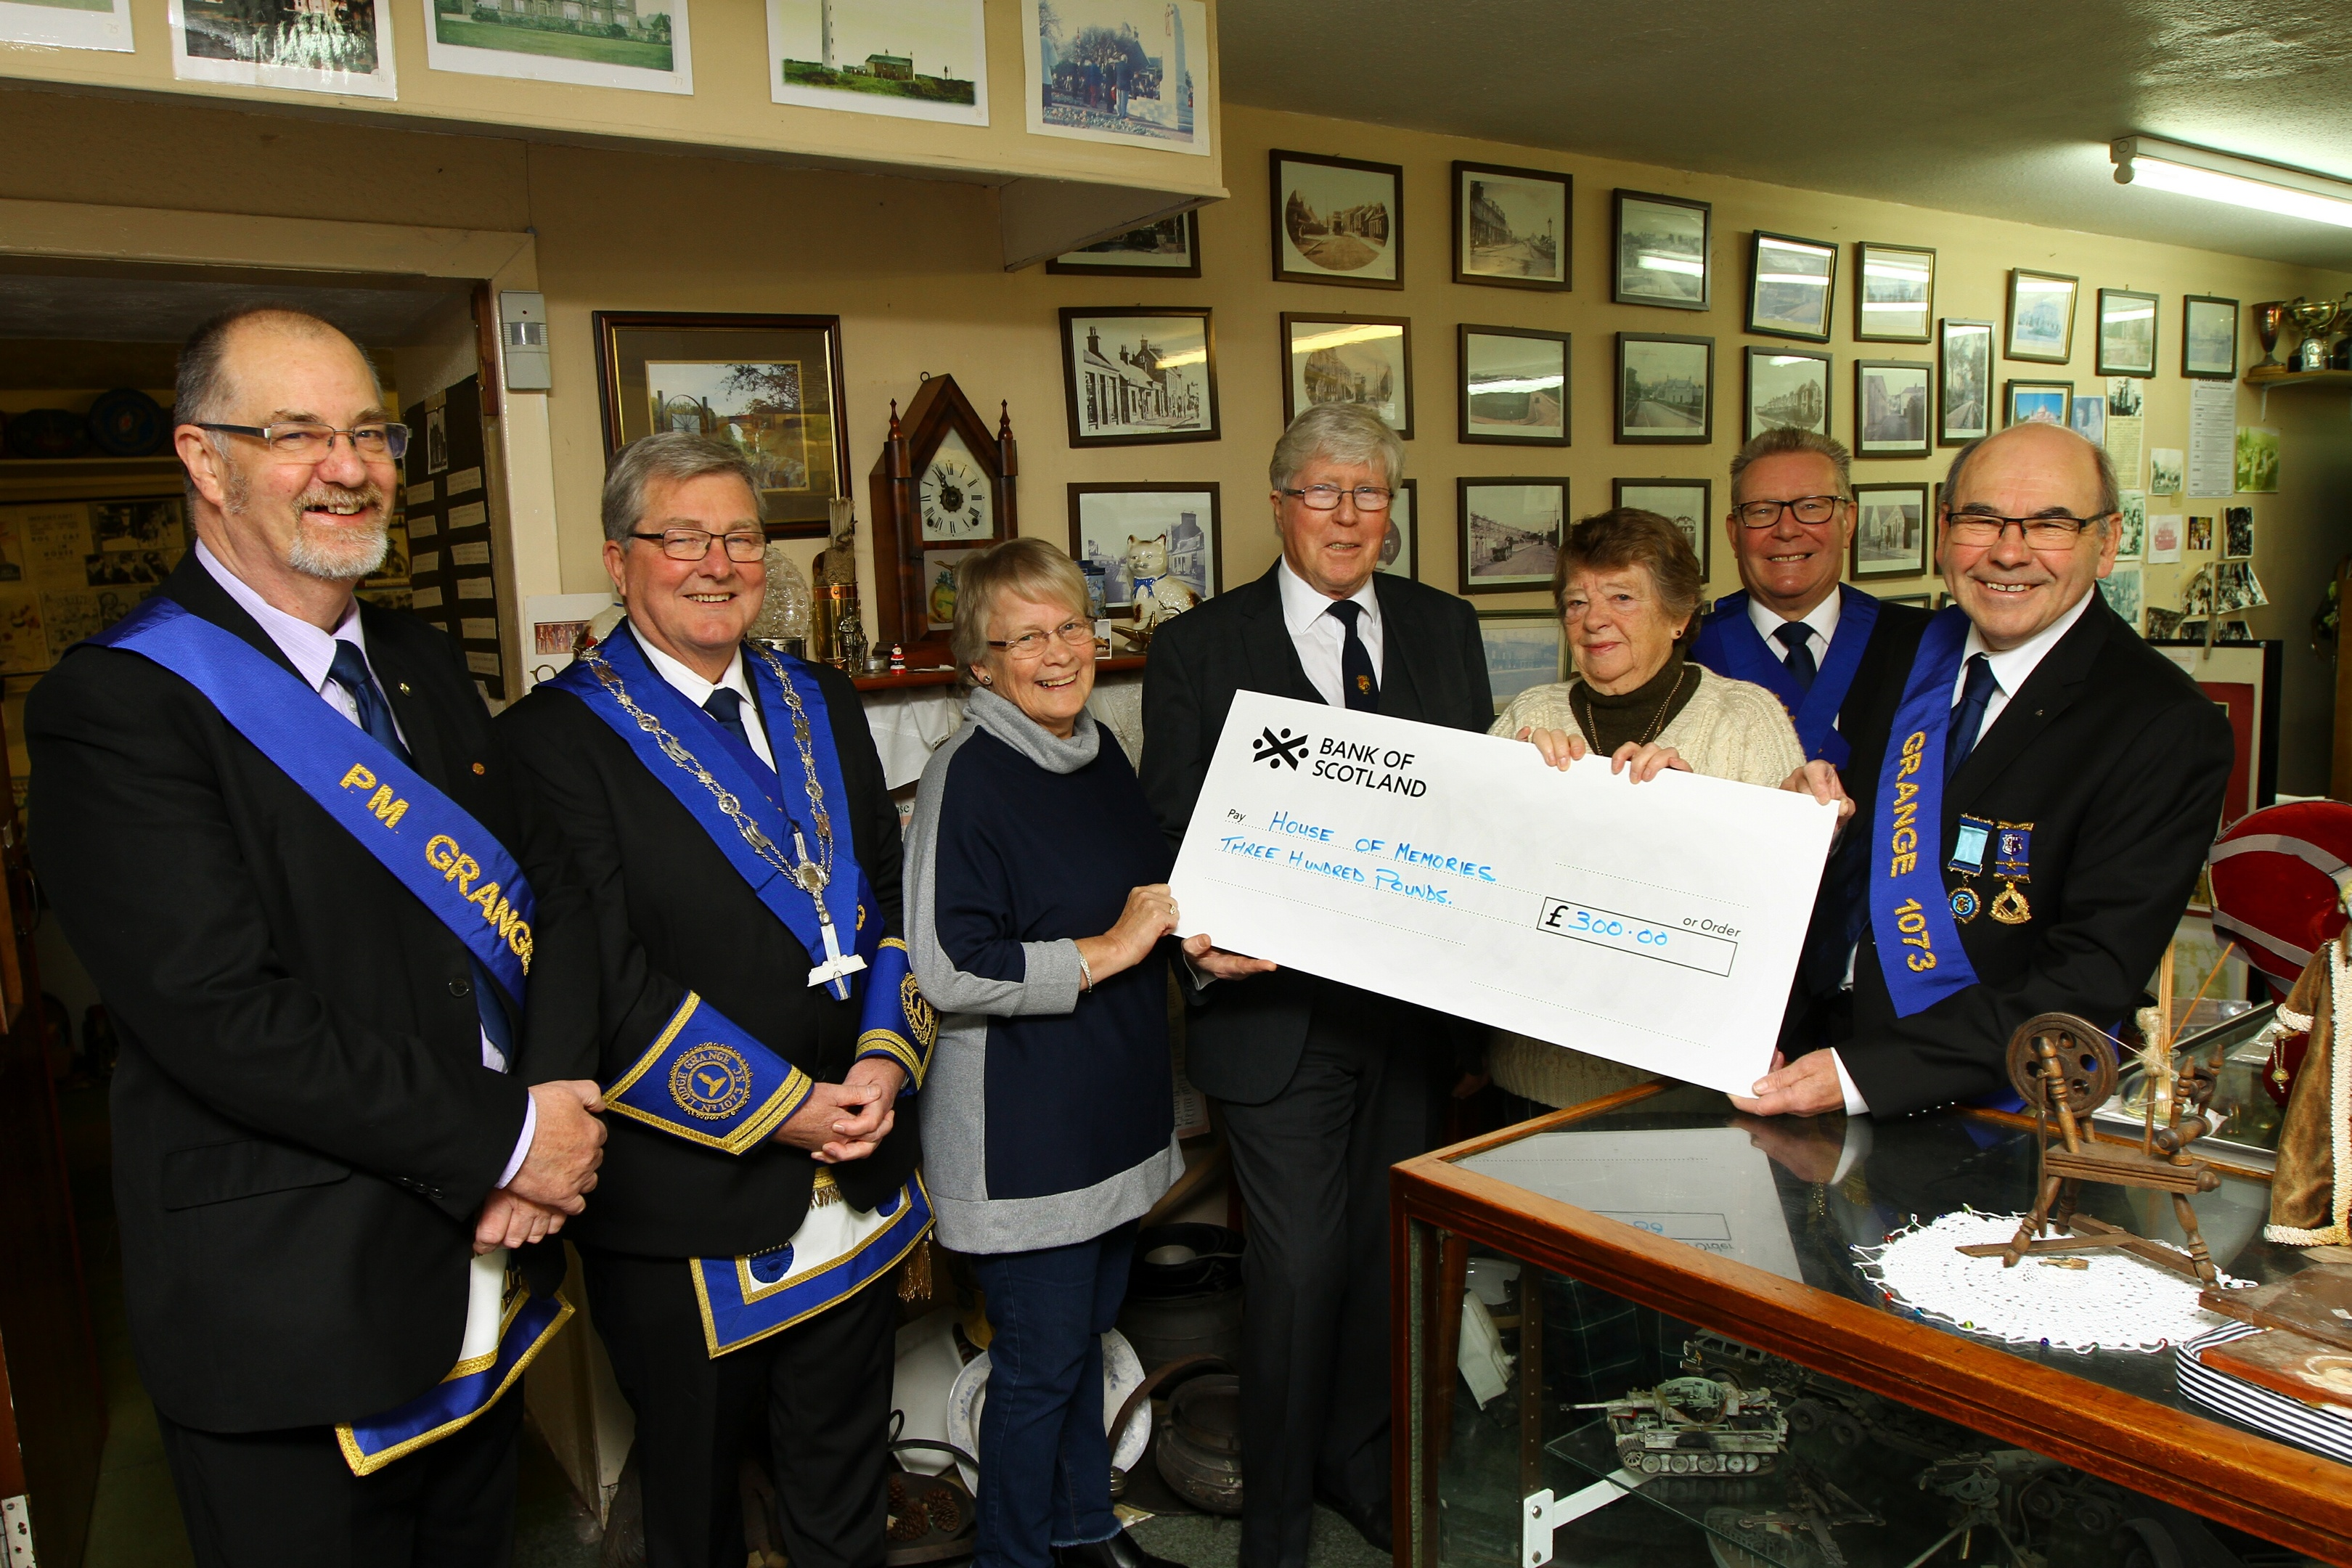 Margaret Copland, 3rd from right, President of the Monifieth Local History Society, and Linda Spalding, 3rd left, Administrator, receiving the cheque for £300 from members of Lodge Grange 1073, L/R, Harry Conway - Past Master, Sam McFadzean - Senior Warden, Bruce Duguid - Past Master, Jim Laing - Immediate Past Master and James Keir - Past Master, at the Monifieth House Of Memories